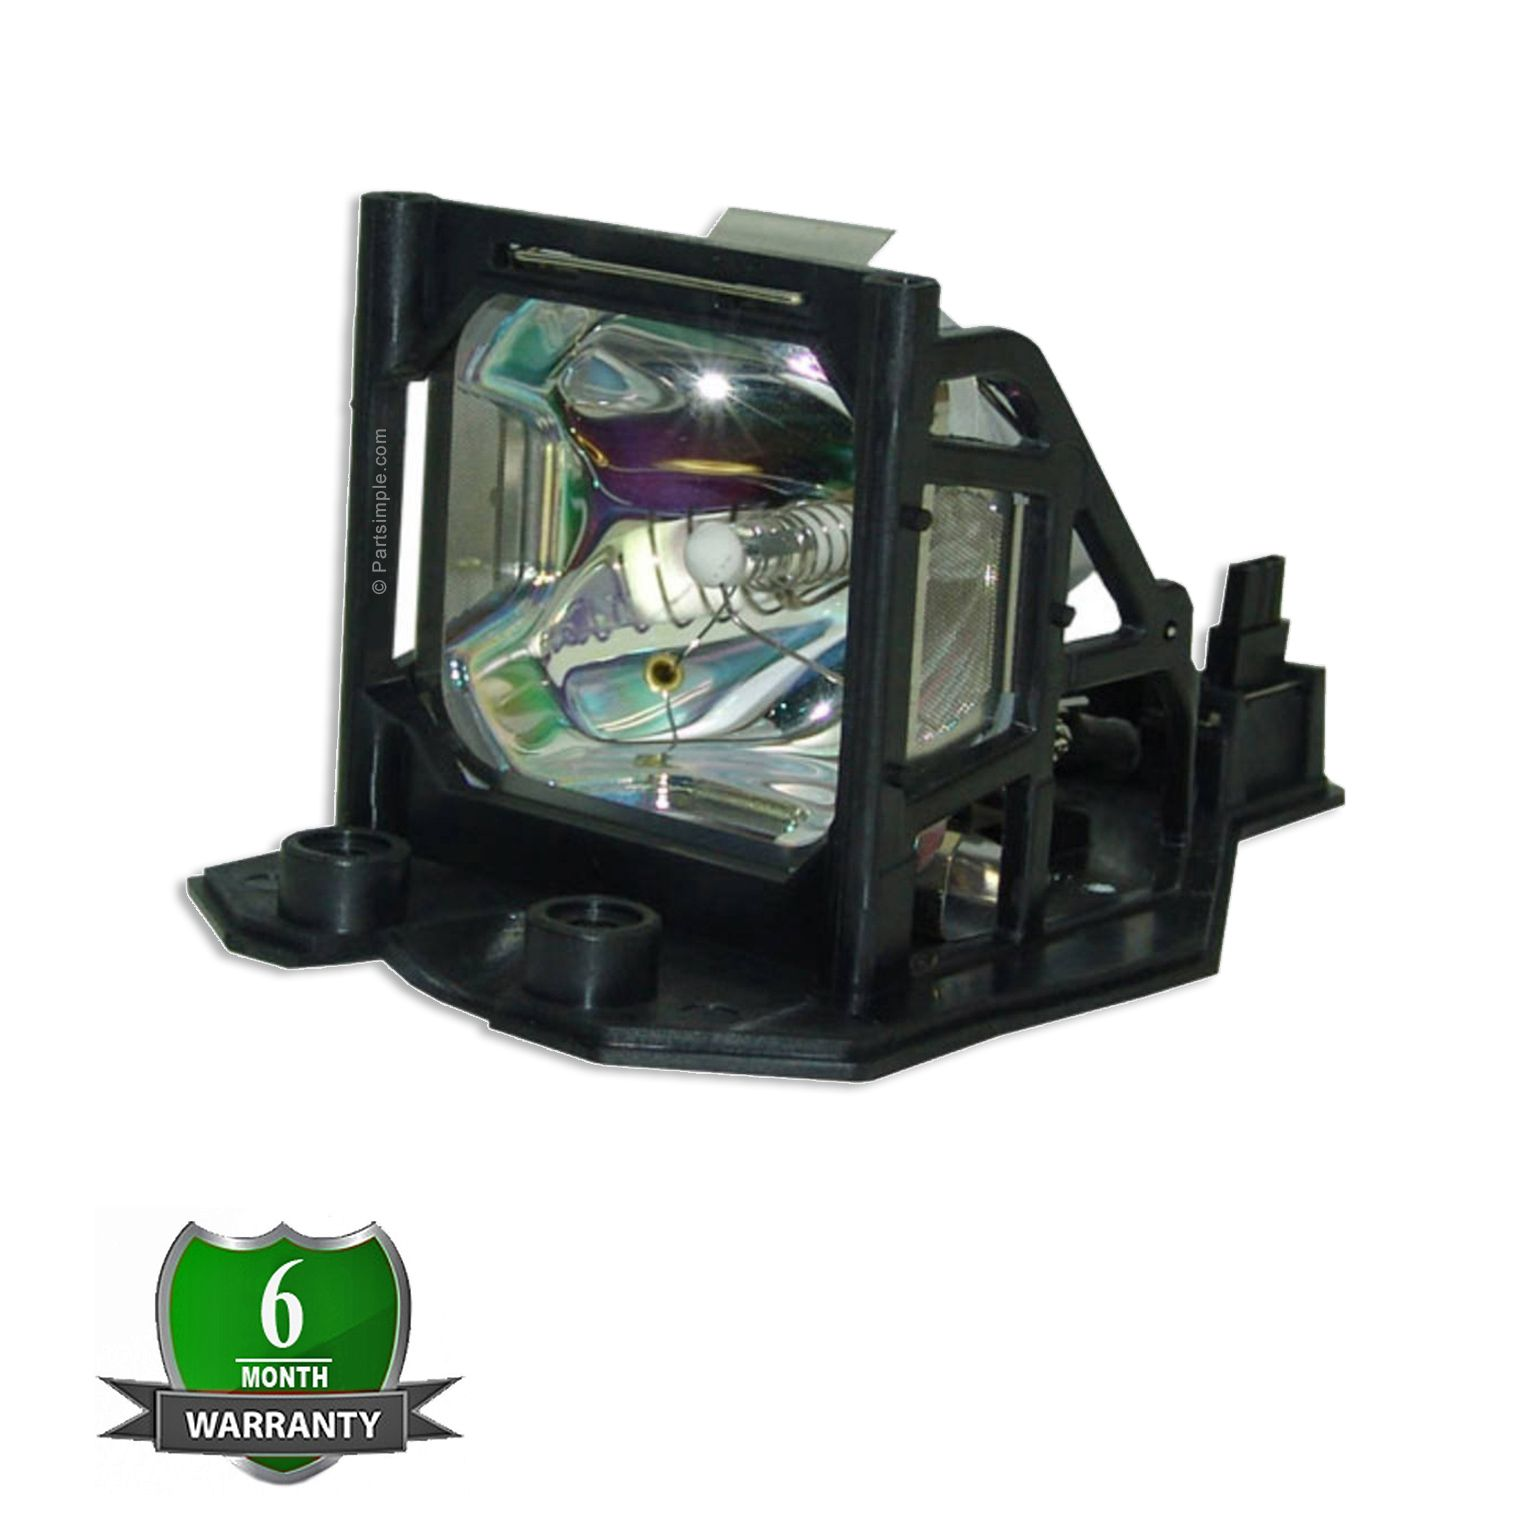 #60-257642 #OEM Replacement #Projector #Lamp with Original Philips Bulb